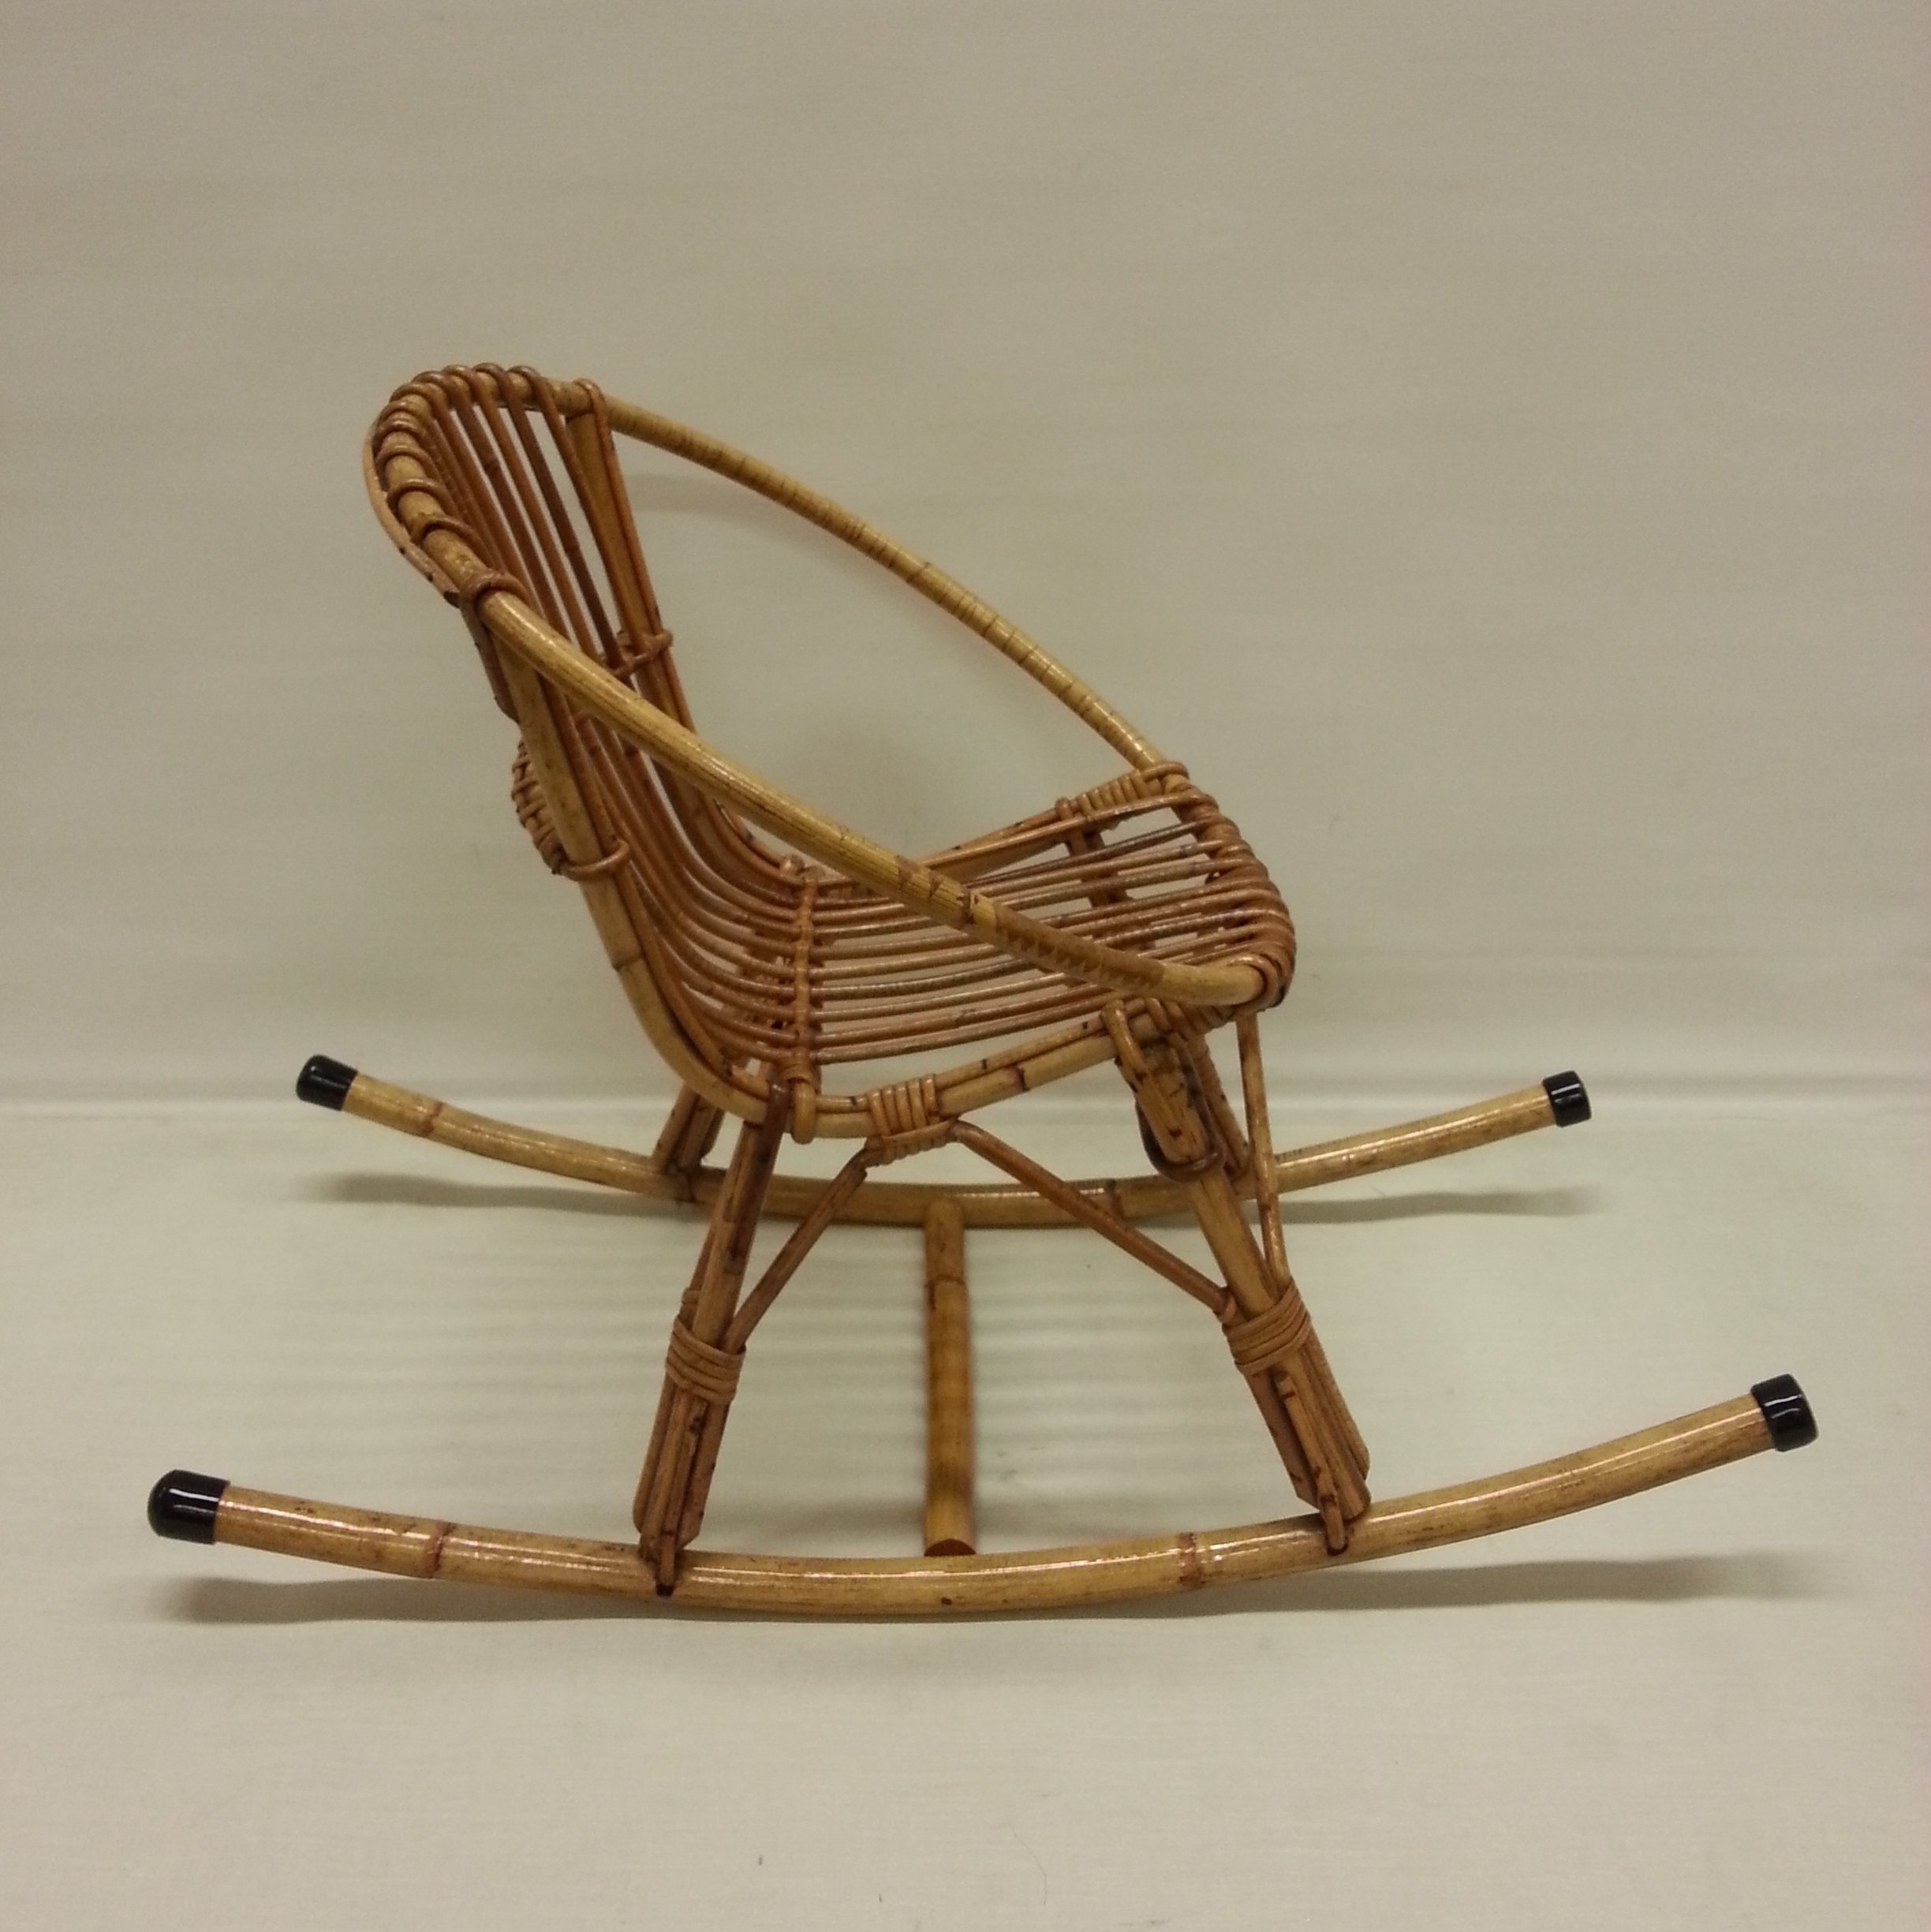 Vintage Childrenu0027s Rocking Chair, 1960s. Vintage Children